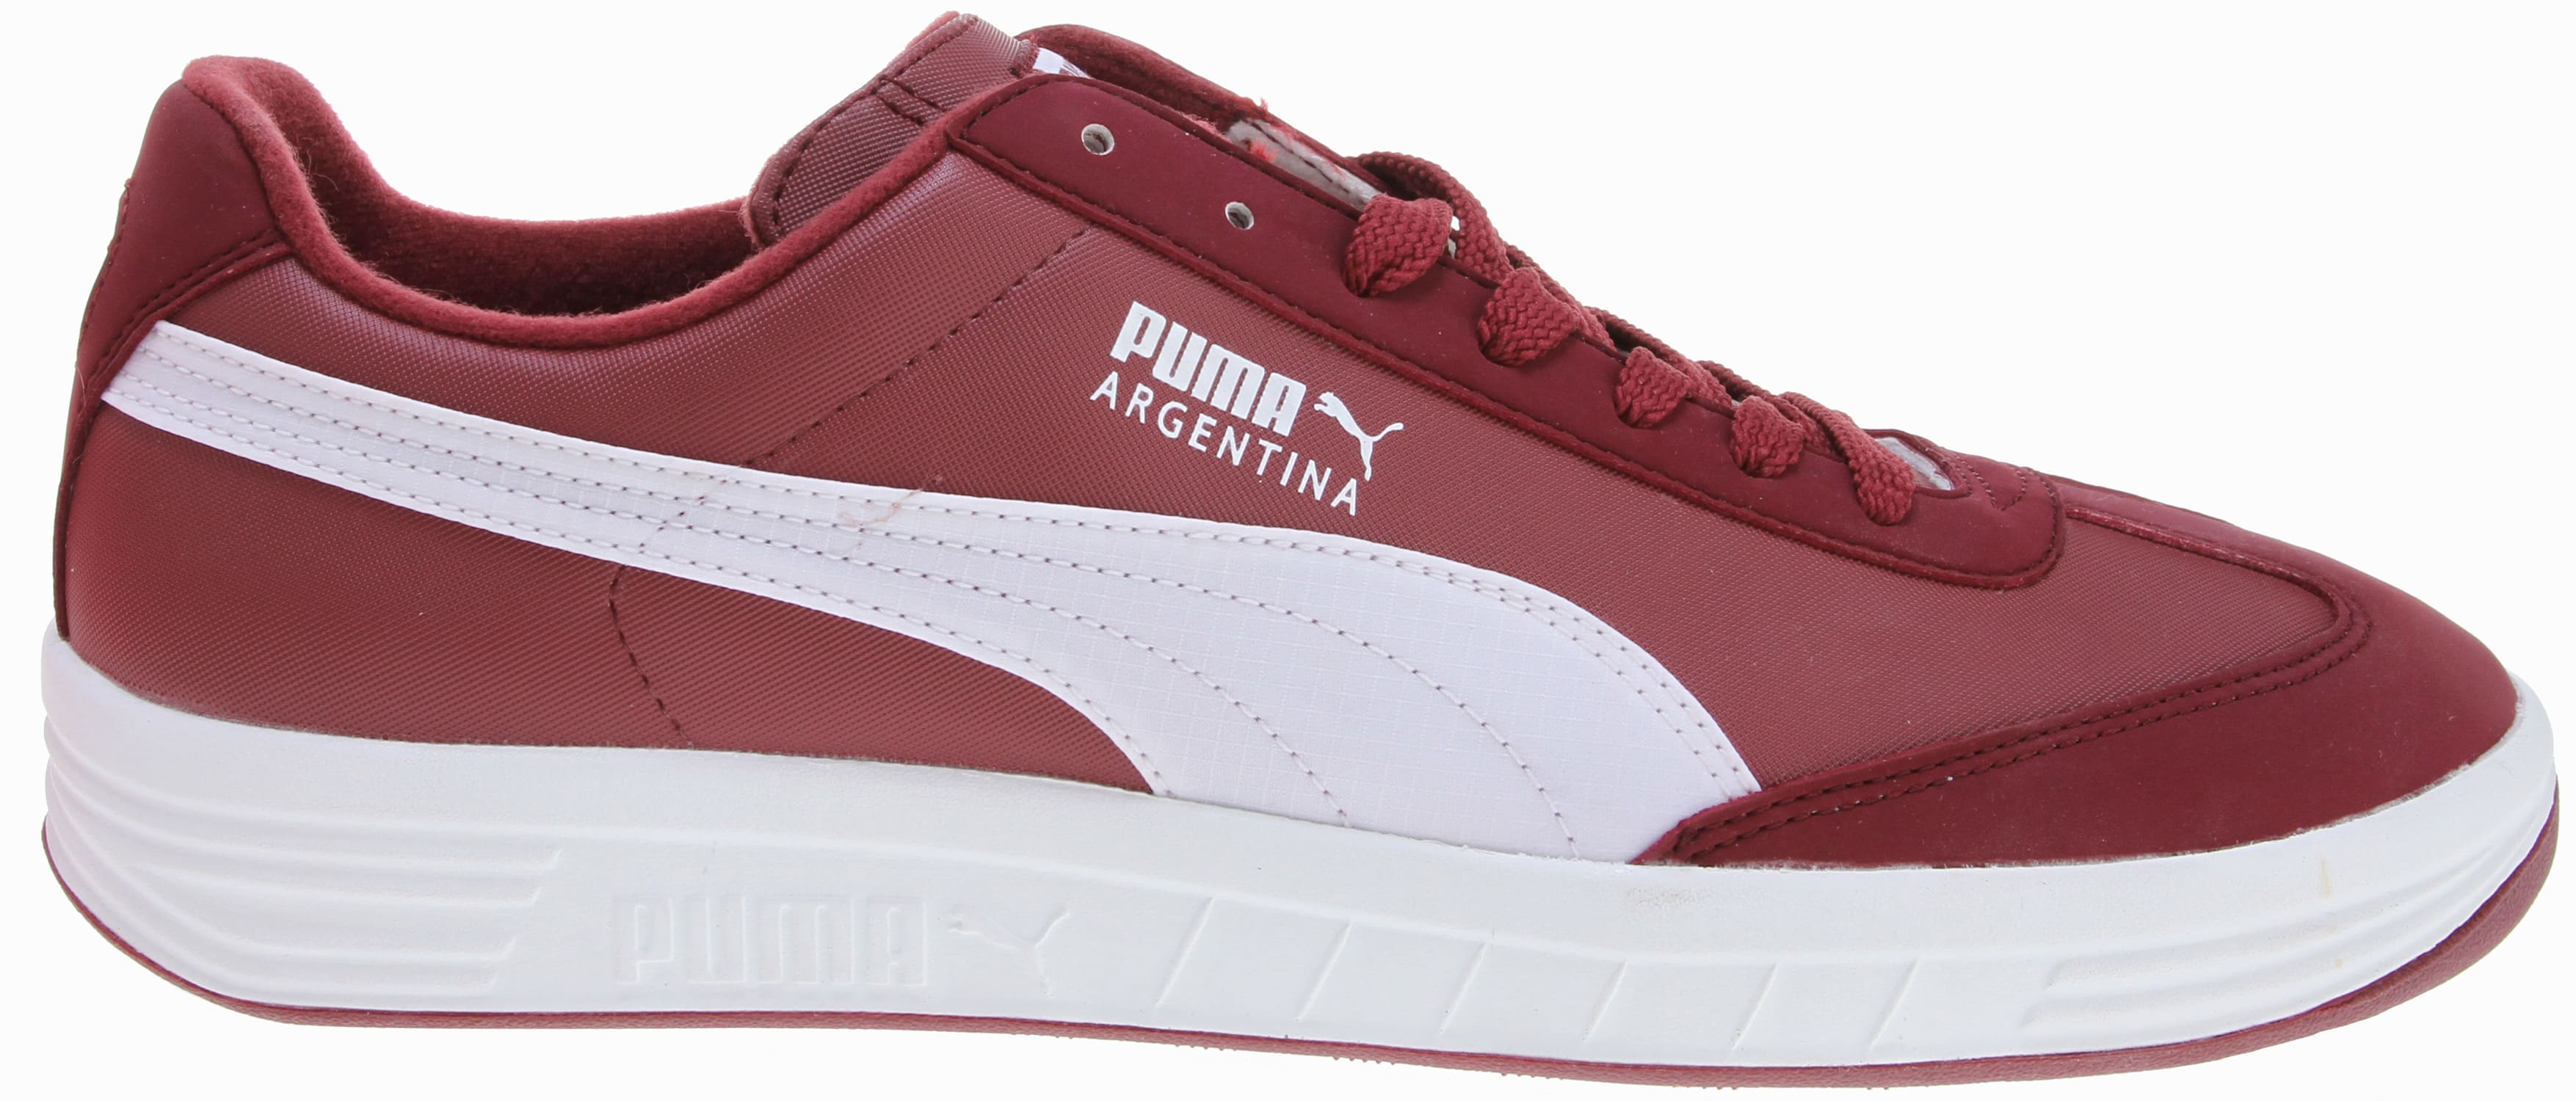 2461367bb43 Puma Argentina Nbk Shoes - thumbnail 1